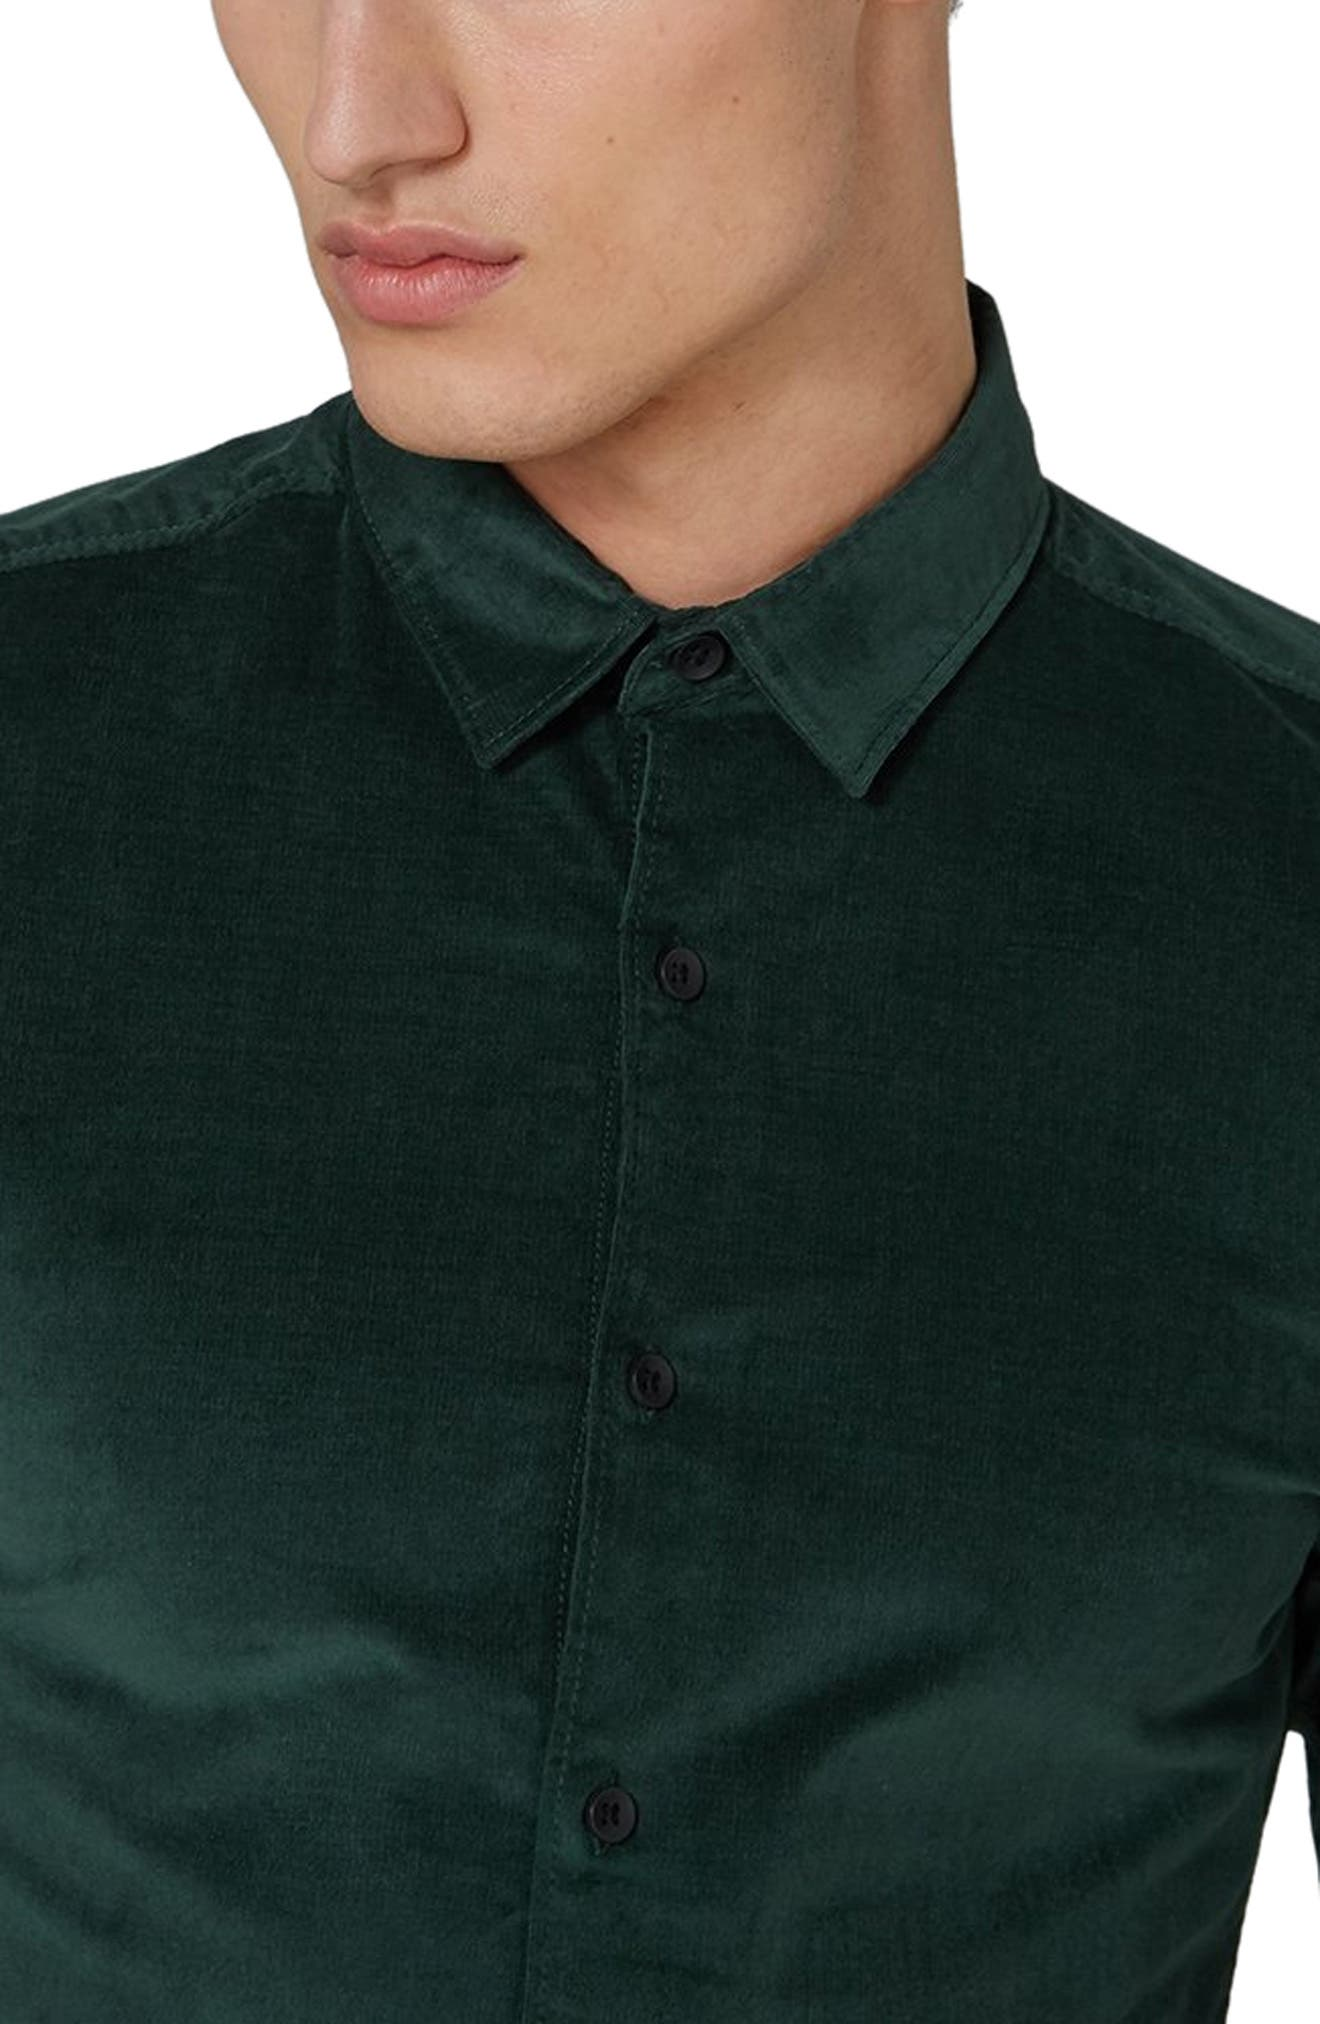 Muscle Fit Corduroy Shirt,                             Alternate thumbnail 2, color,                             GREEN